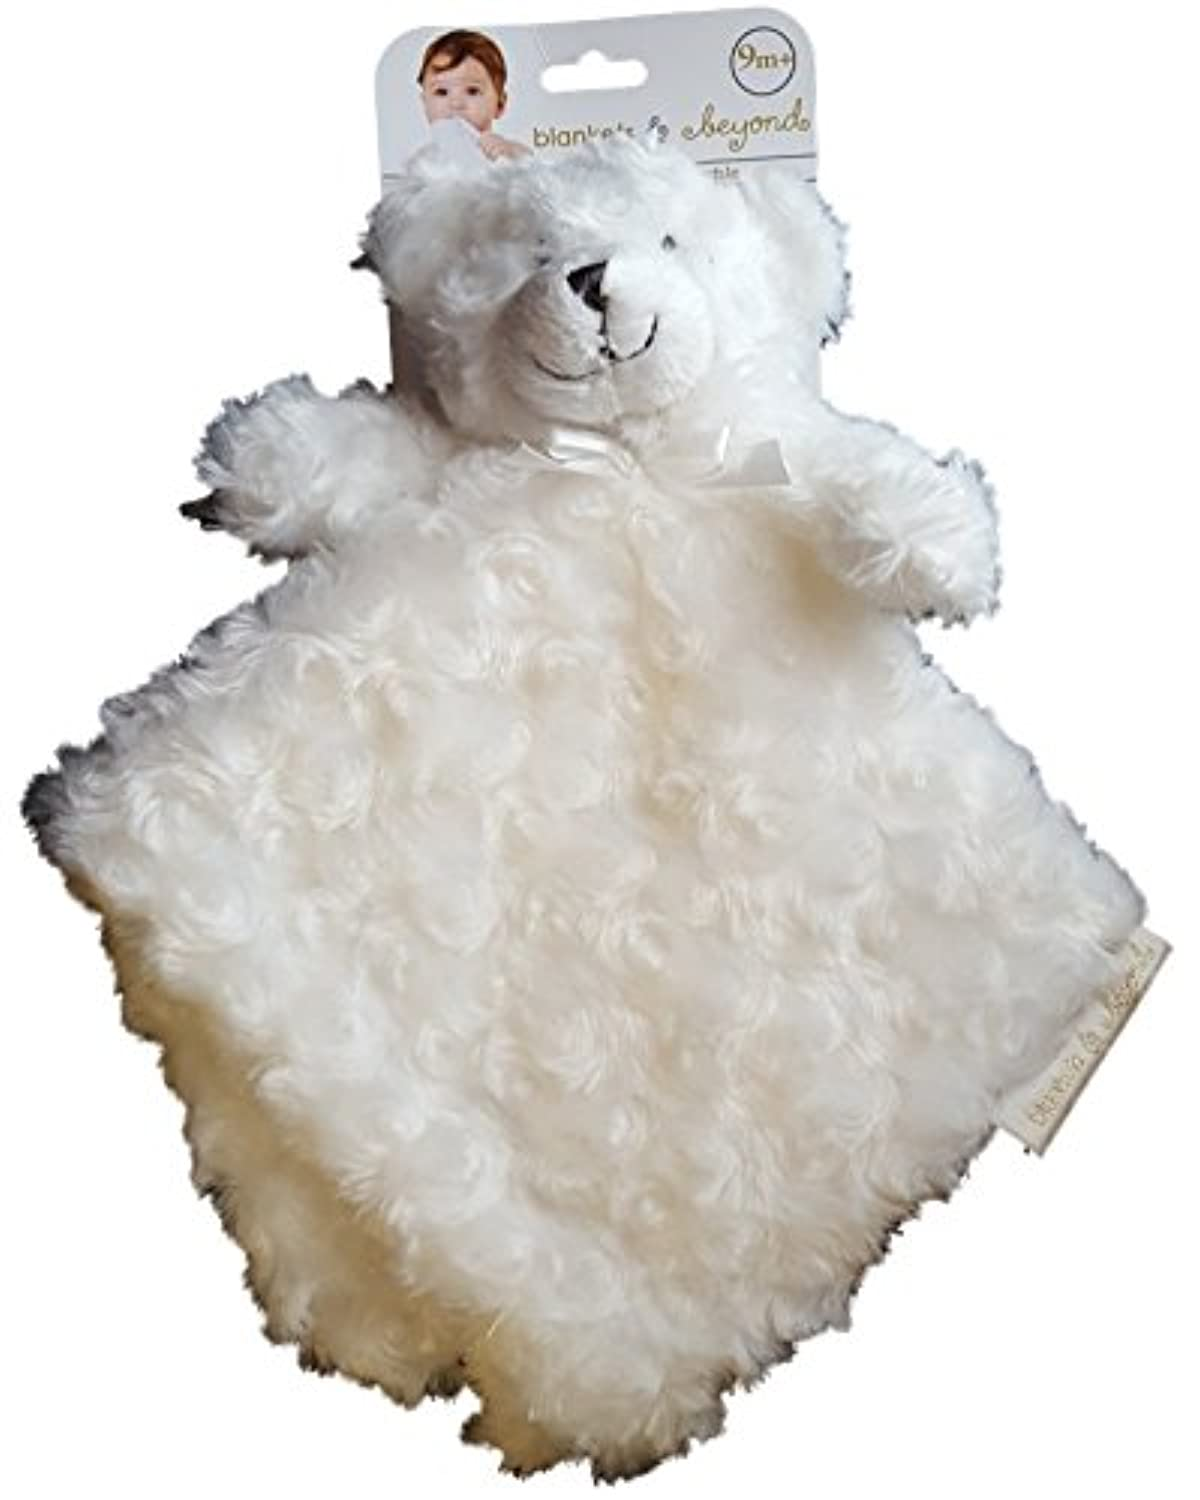 Blankets & Beyond White Rosette Bear Security Blanket by Blankets and Beyond